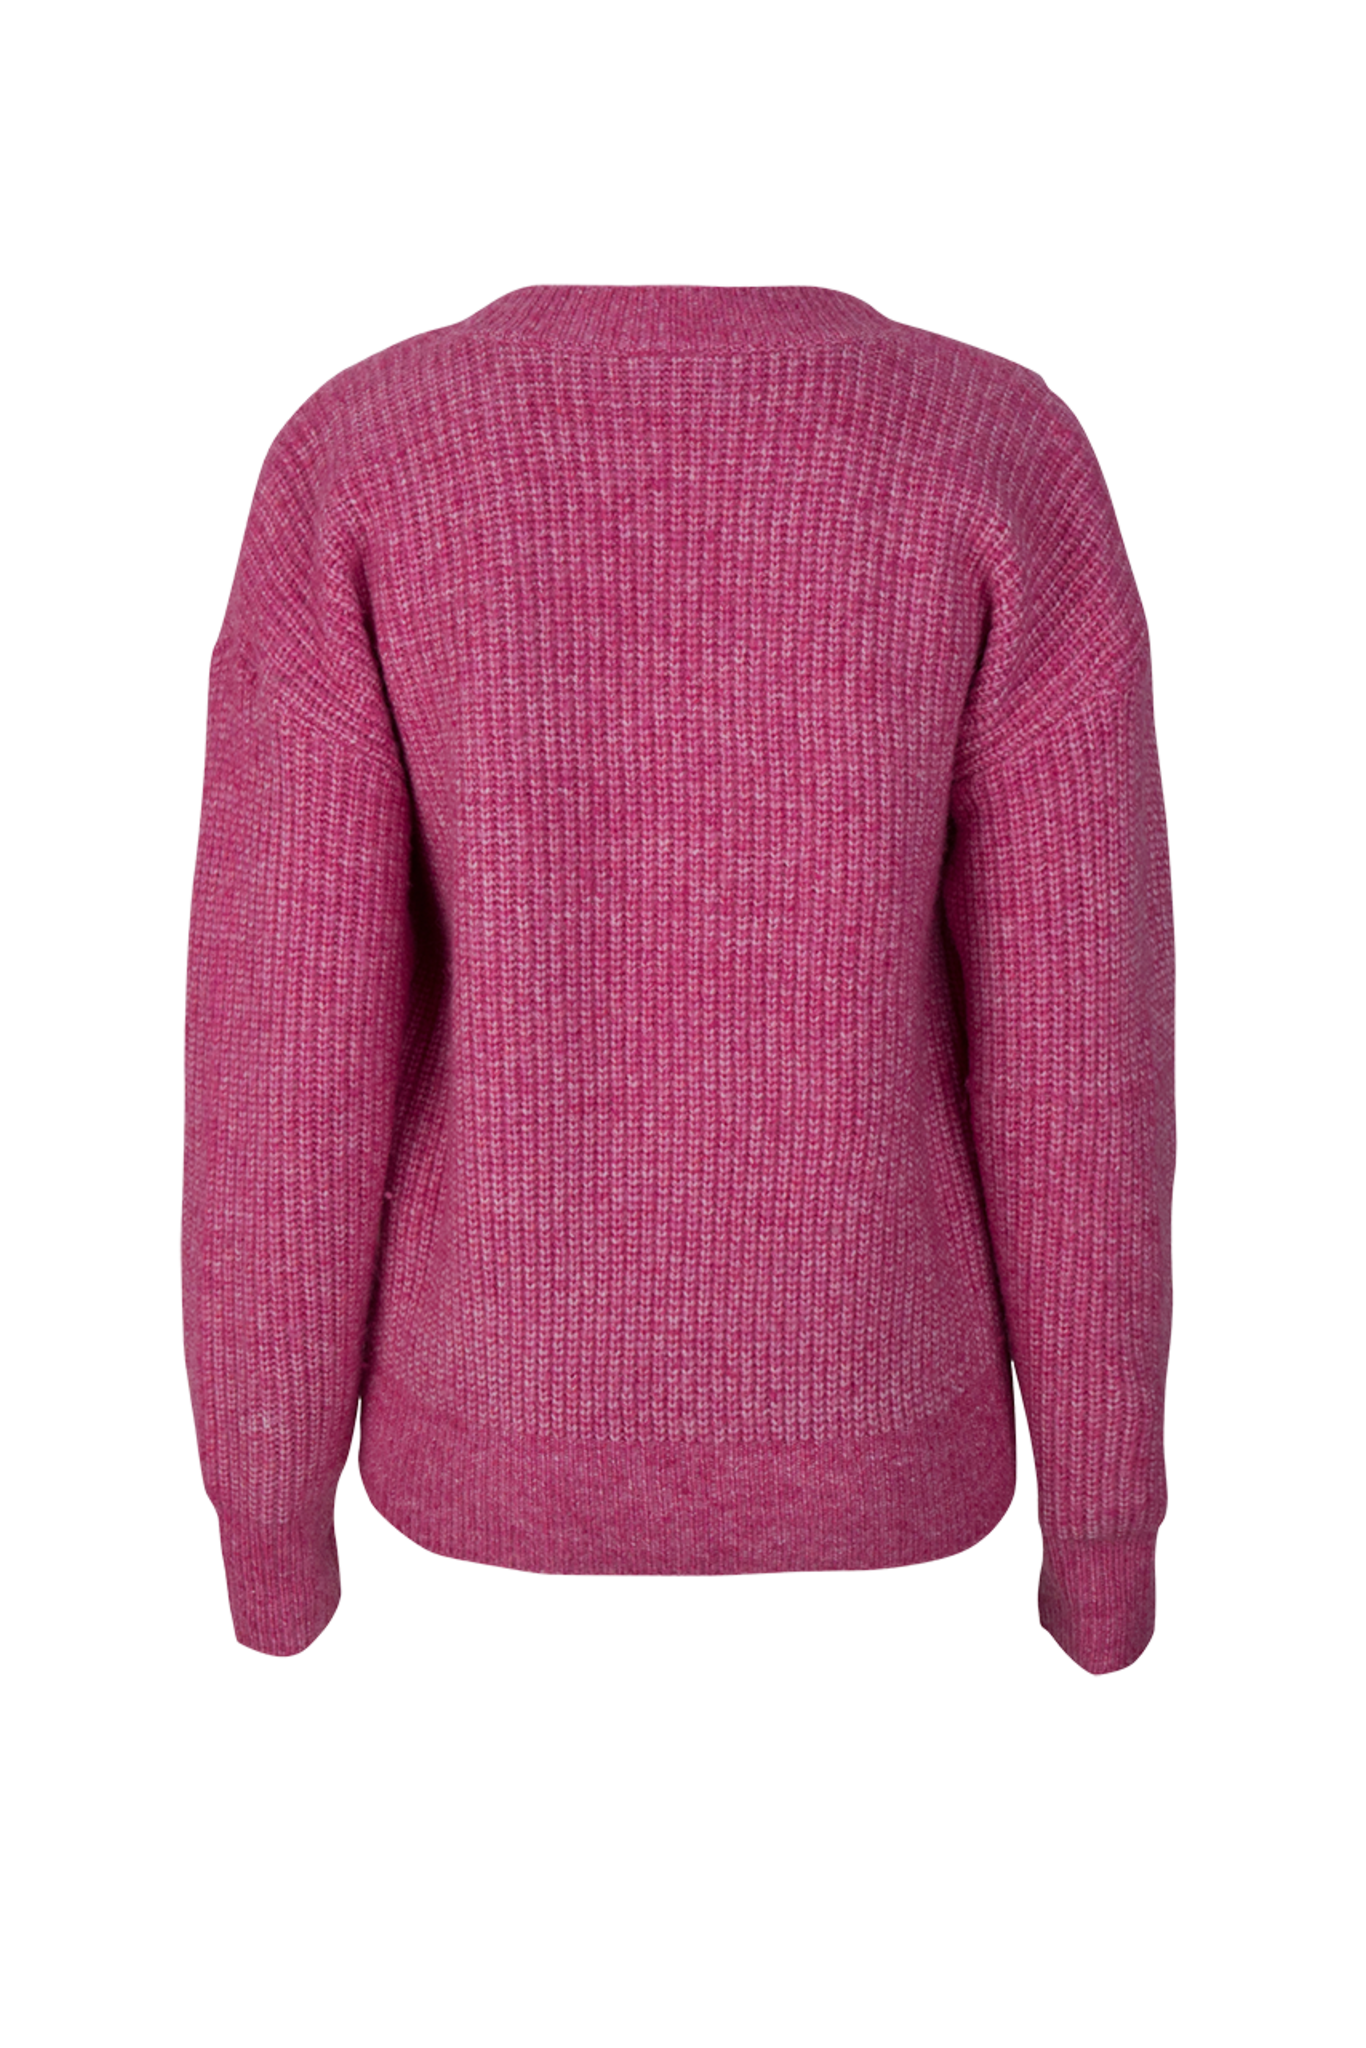 Taos Cropped Knitted Sweater - Ultra Pink-4